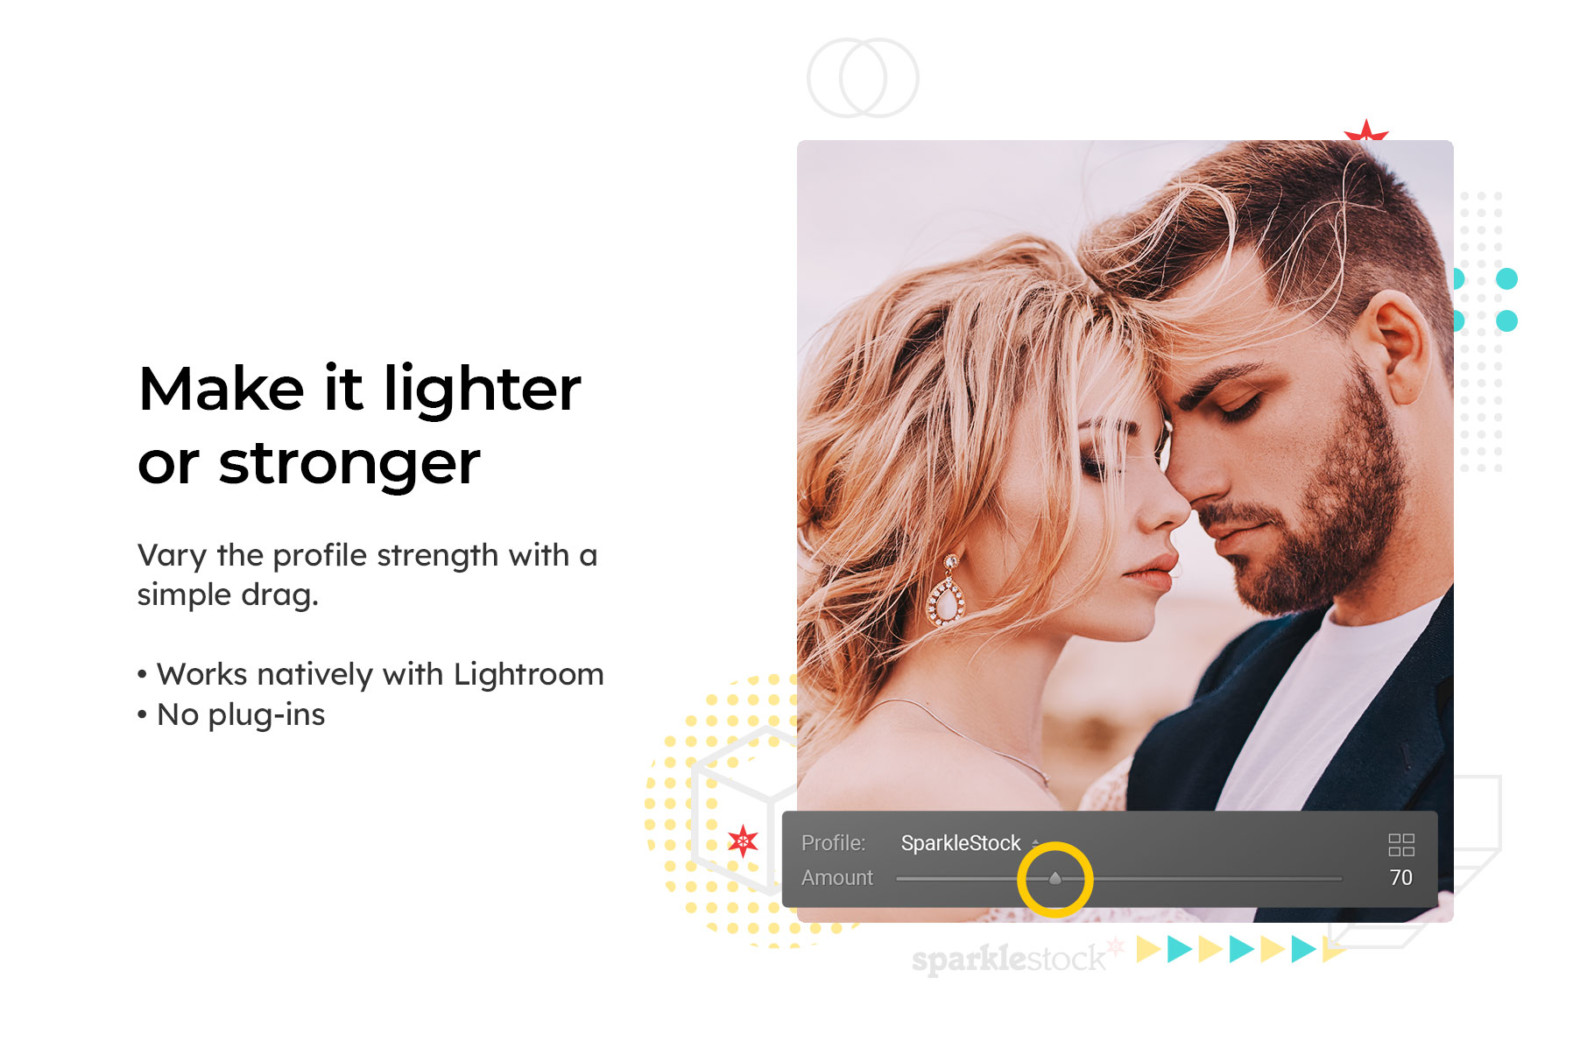 20 Rose Tinted Lightroom Presets and LUTs - 08 9 -